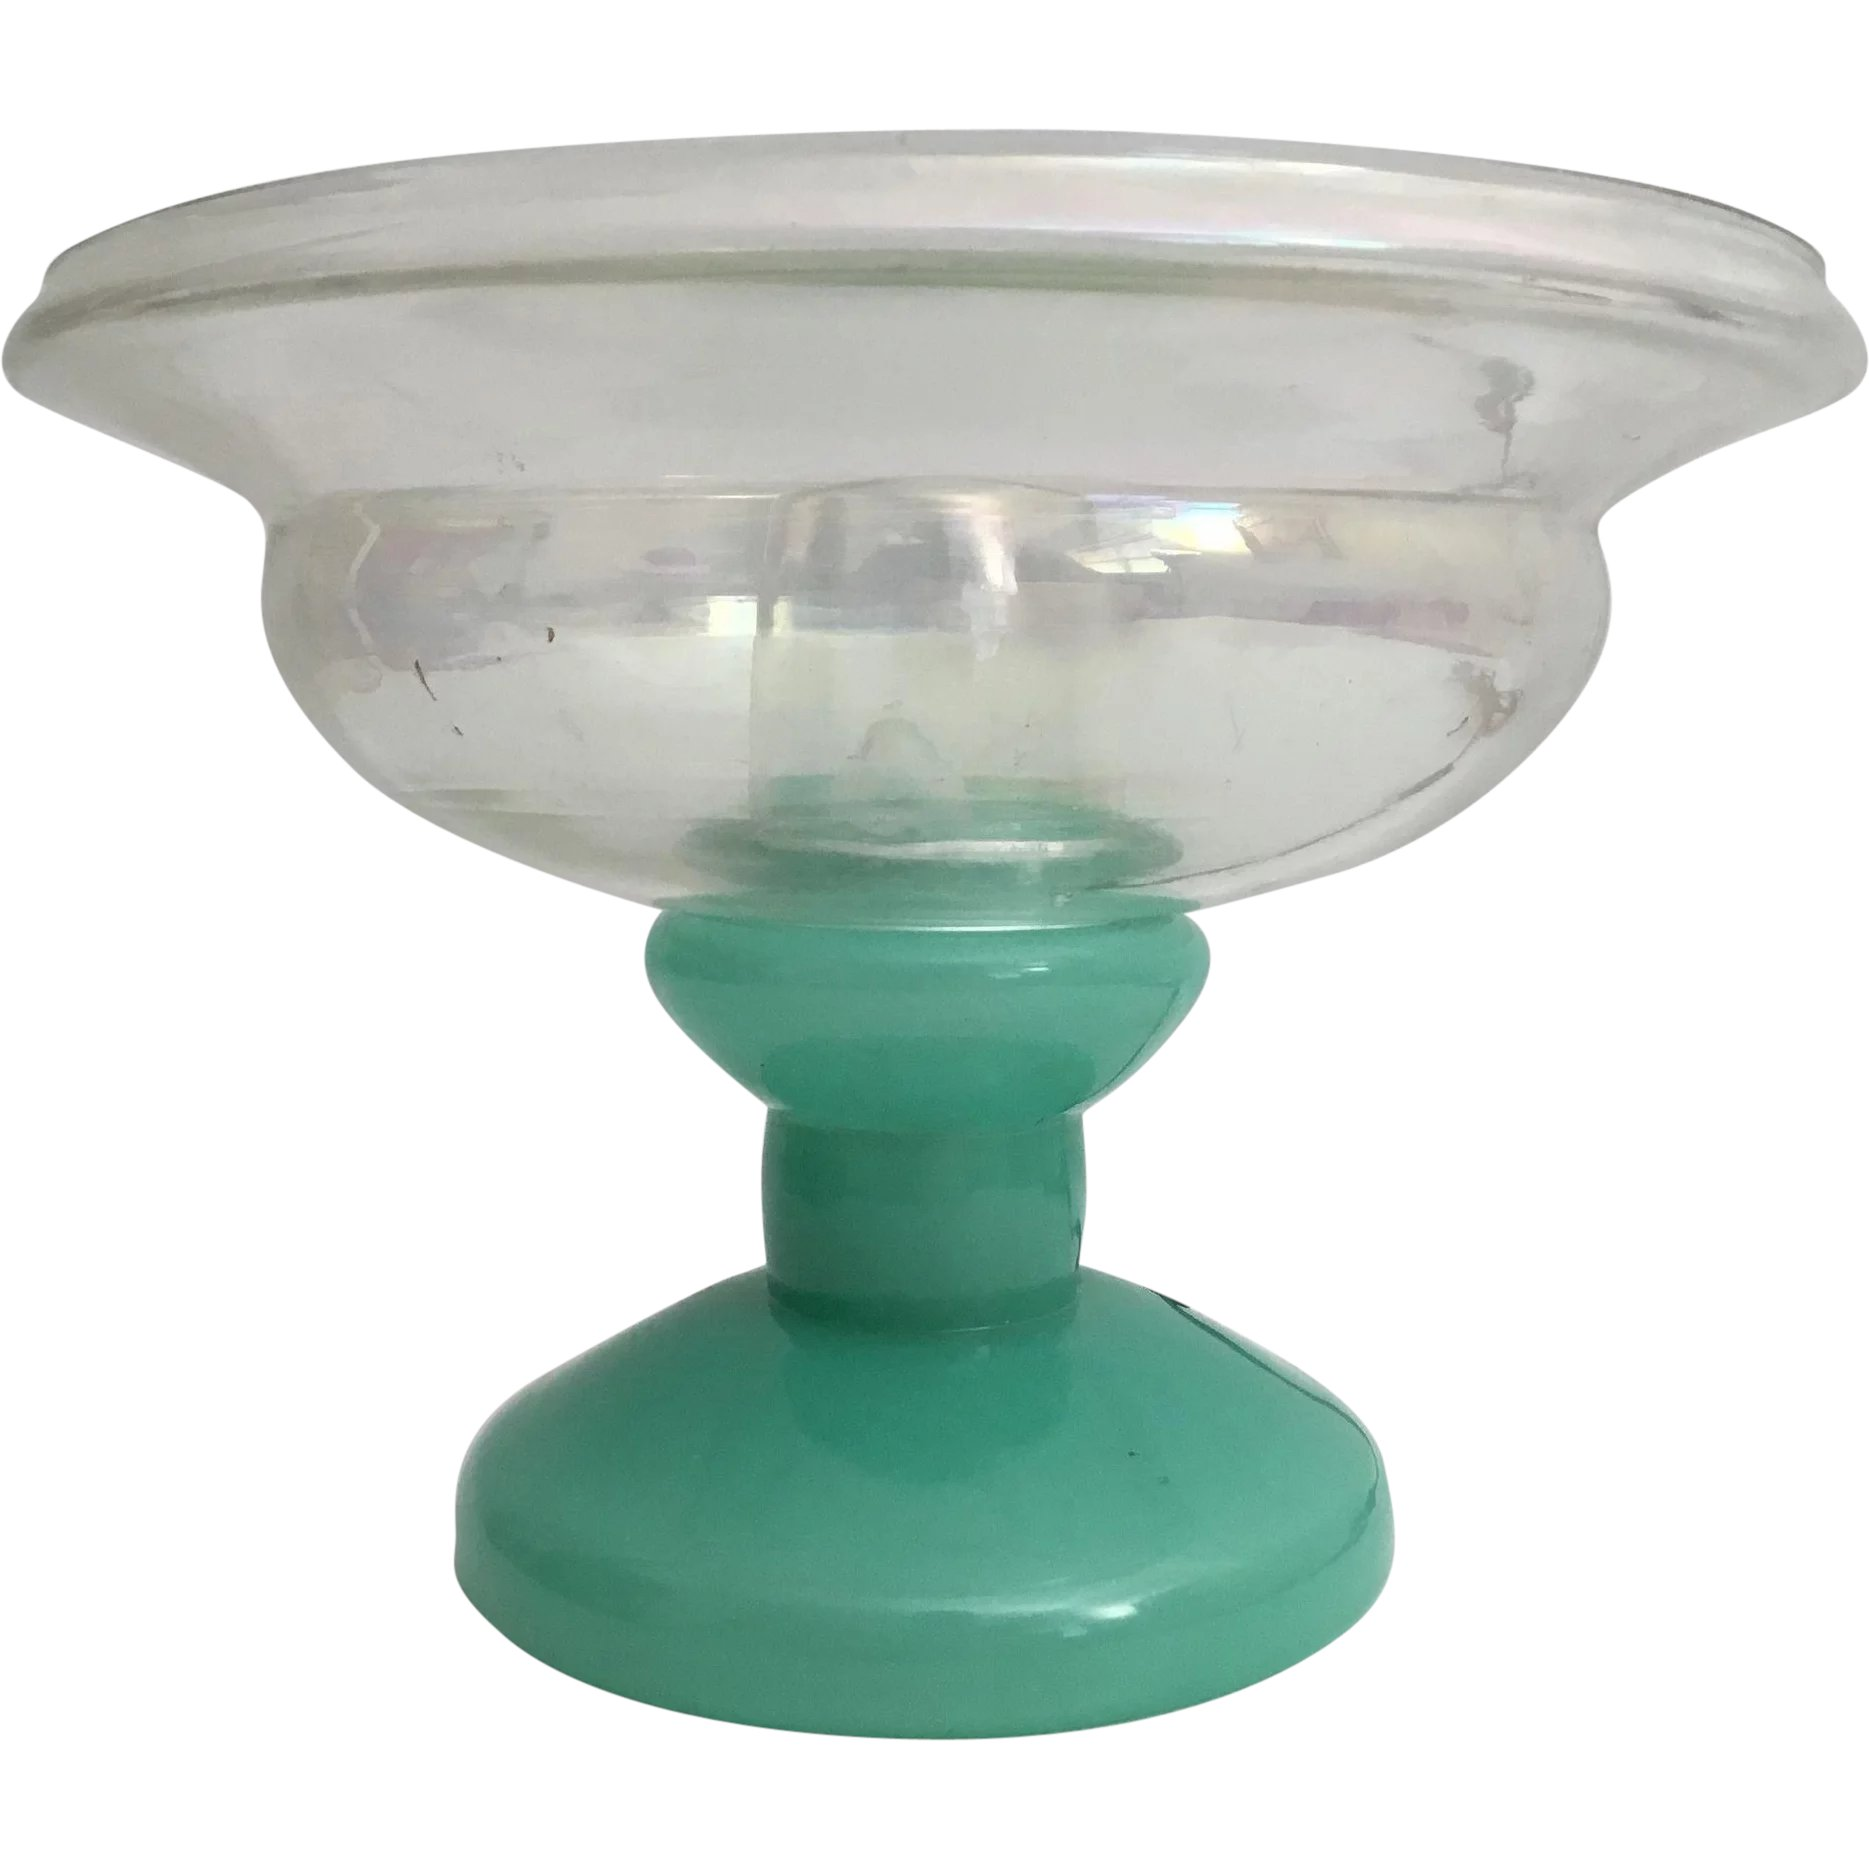 Glass Lamp Bowl Stunning Czech Green Glass Lamp With A Fitted Clear Iridescent Glass Bowl Good Safe Wiring